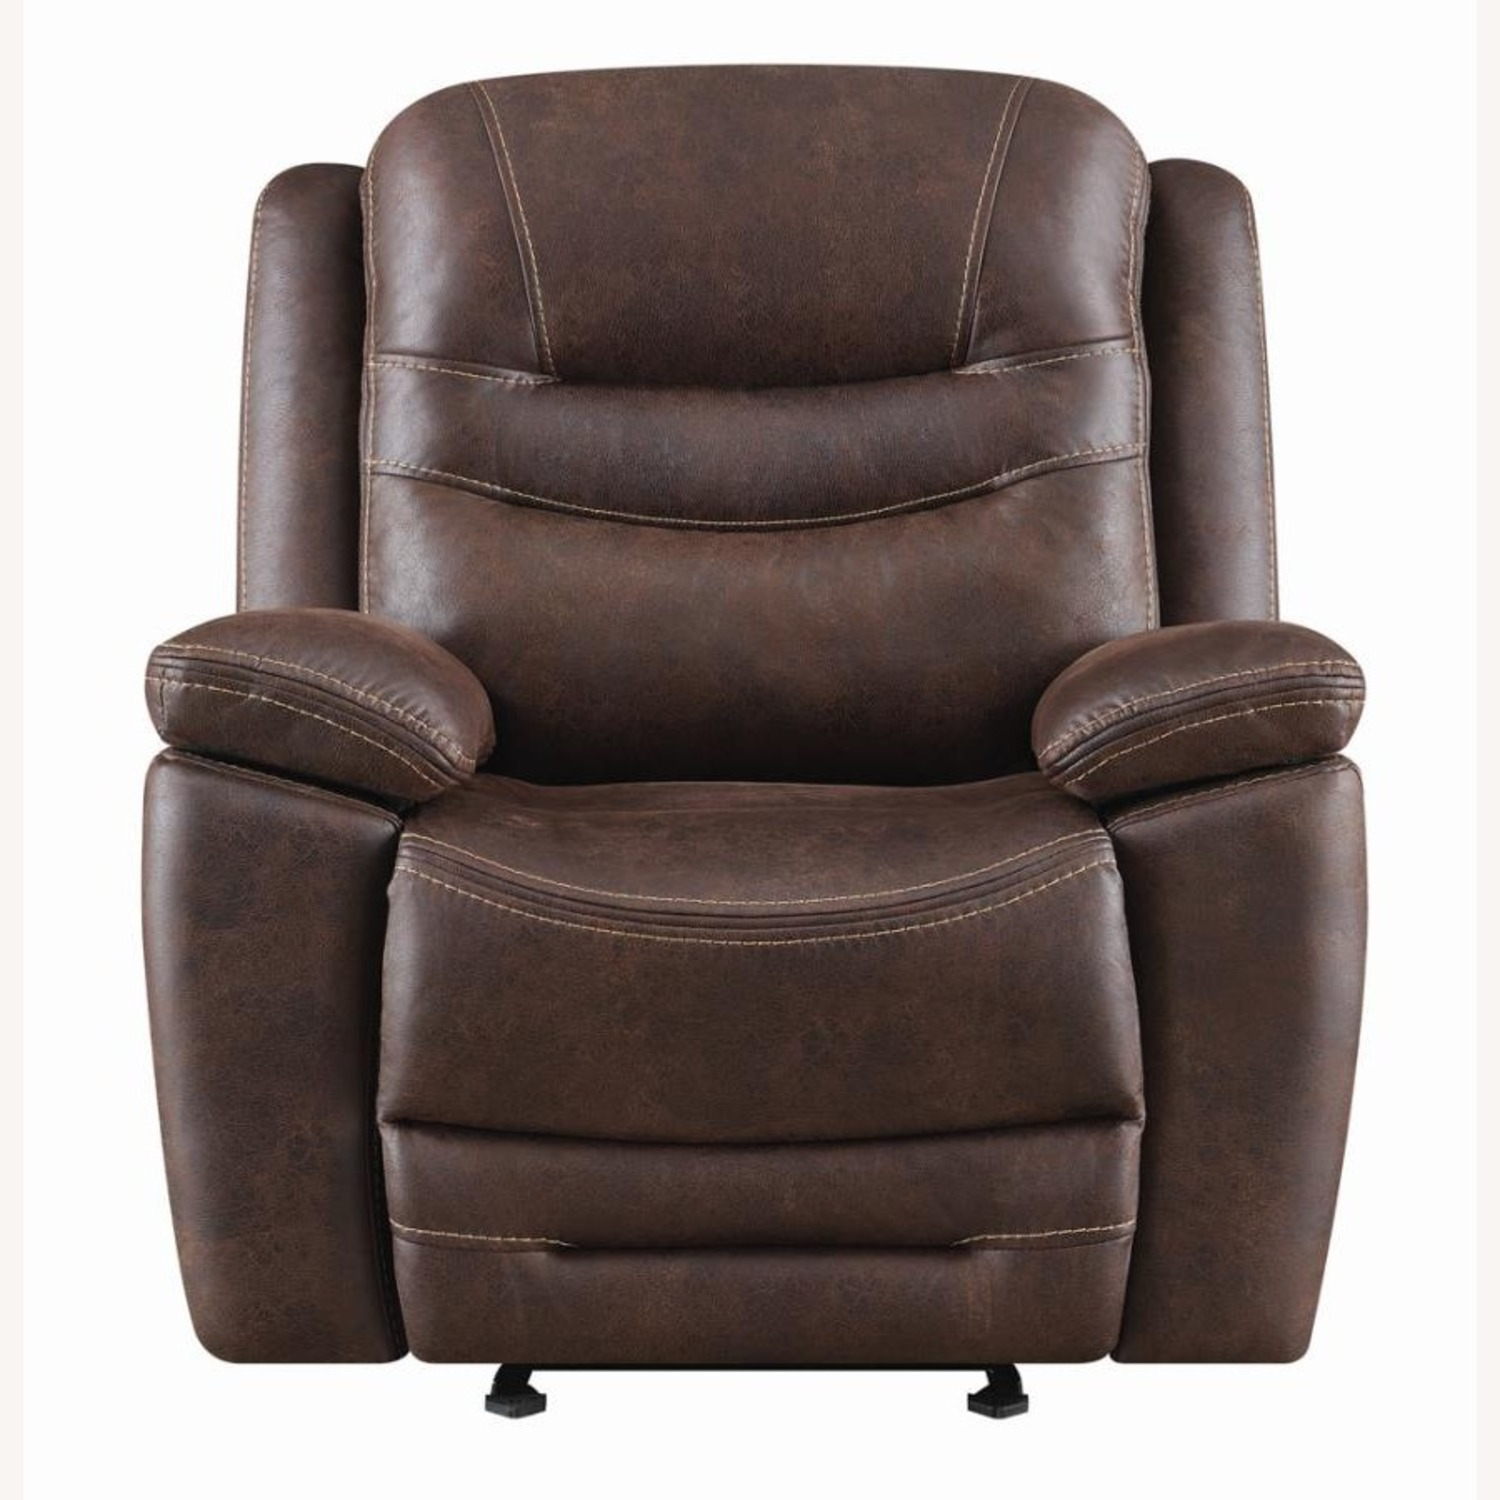 Power Glider Recliner In Chocolate Faux Upholstery - image-2